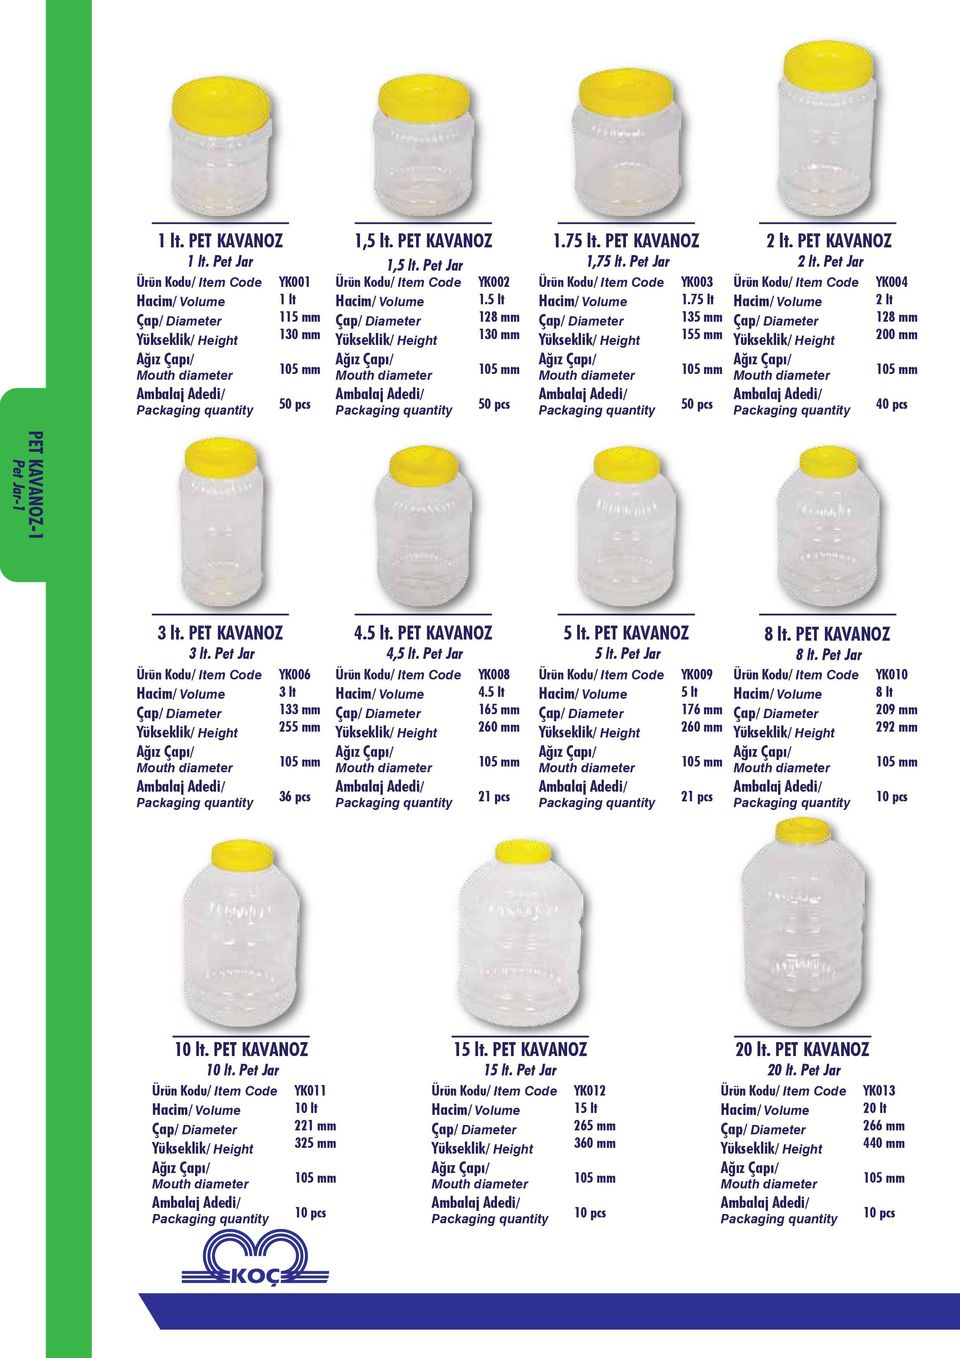 PET KAVANOZ 2 lt. Pet Jar / Item Code Hacim/ Volume Yükseklik/ Packaging quantity YK004 2 lt 128 mm 200 mm 40 pcs PET KAVANOZ-1 Pet Jar-1 3 lt. PET KAVANOZ 3 lt.